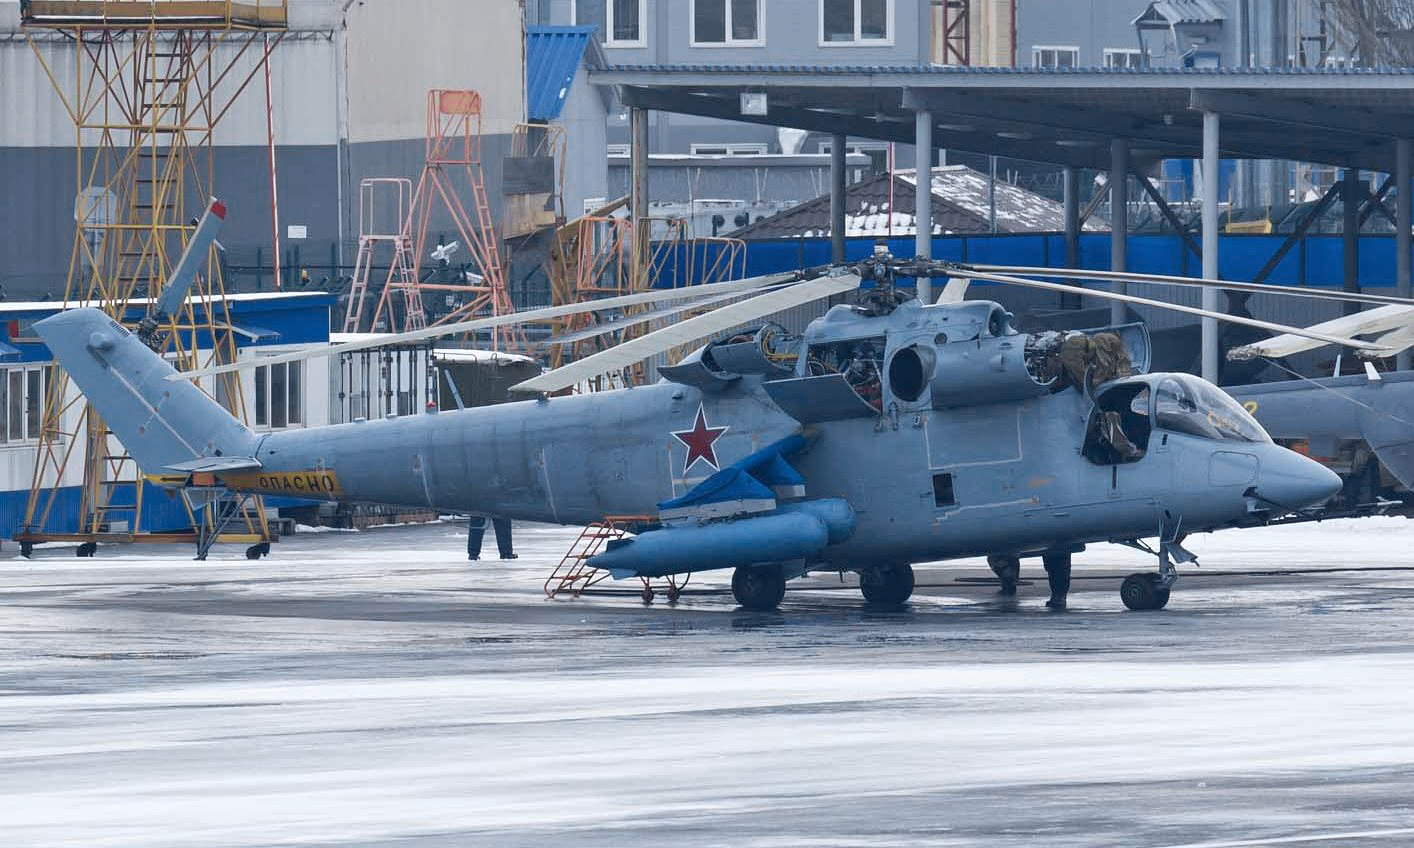 russian mil v 12 helicopter with 9xgt on 1542549 besides Strangest And Weirdest Planes On Earth additionally Russia Laos Ink New Military Helicopter in addition 5VMBifn GV8 further Mil Mi 4.